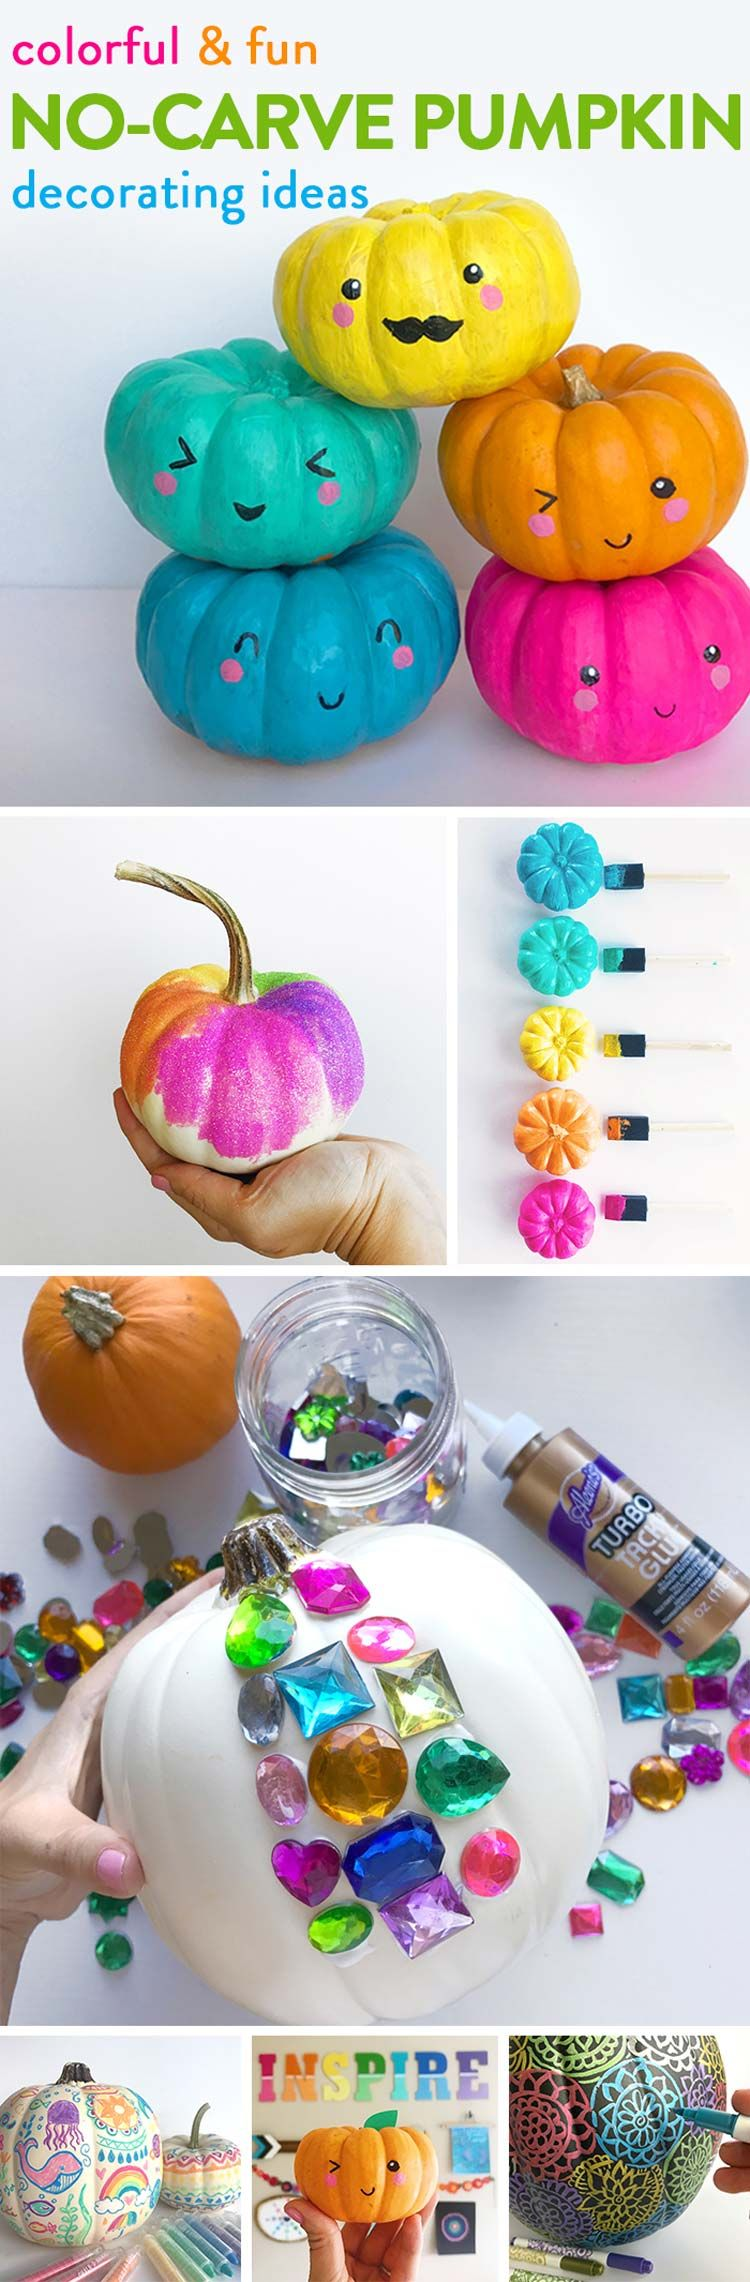 Pumpkins make a wonderful canvas for bright and beautiful designs. When designing your pumpkins let your imagination run wild. Try everything!